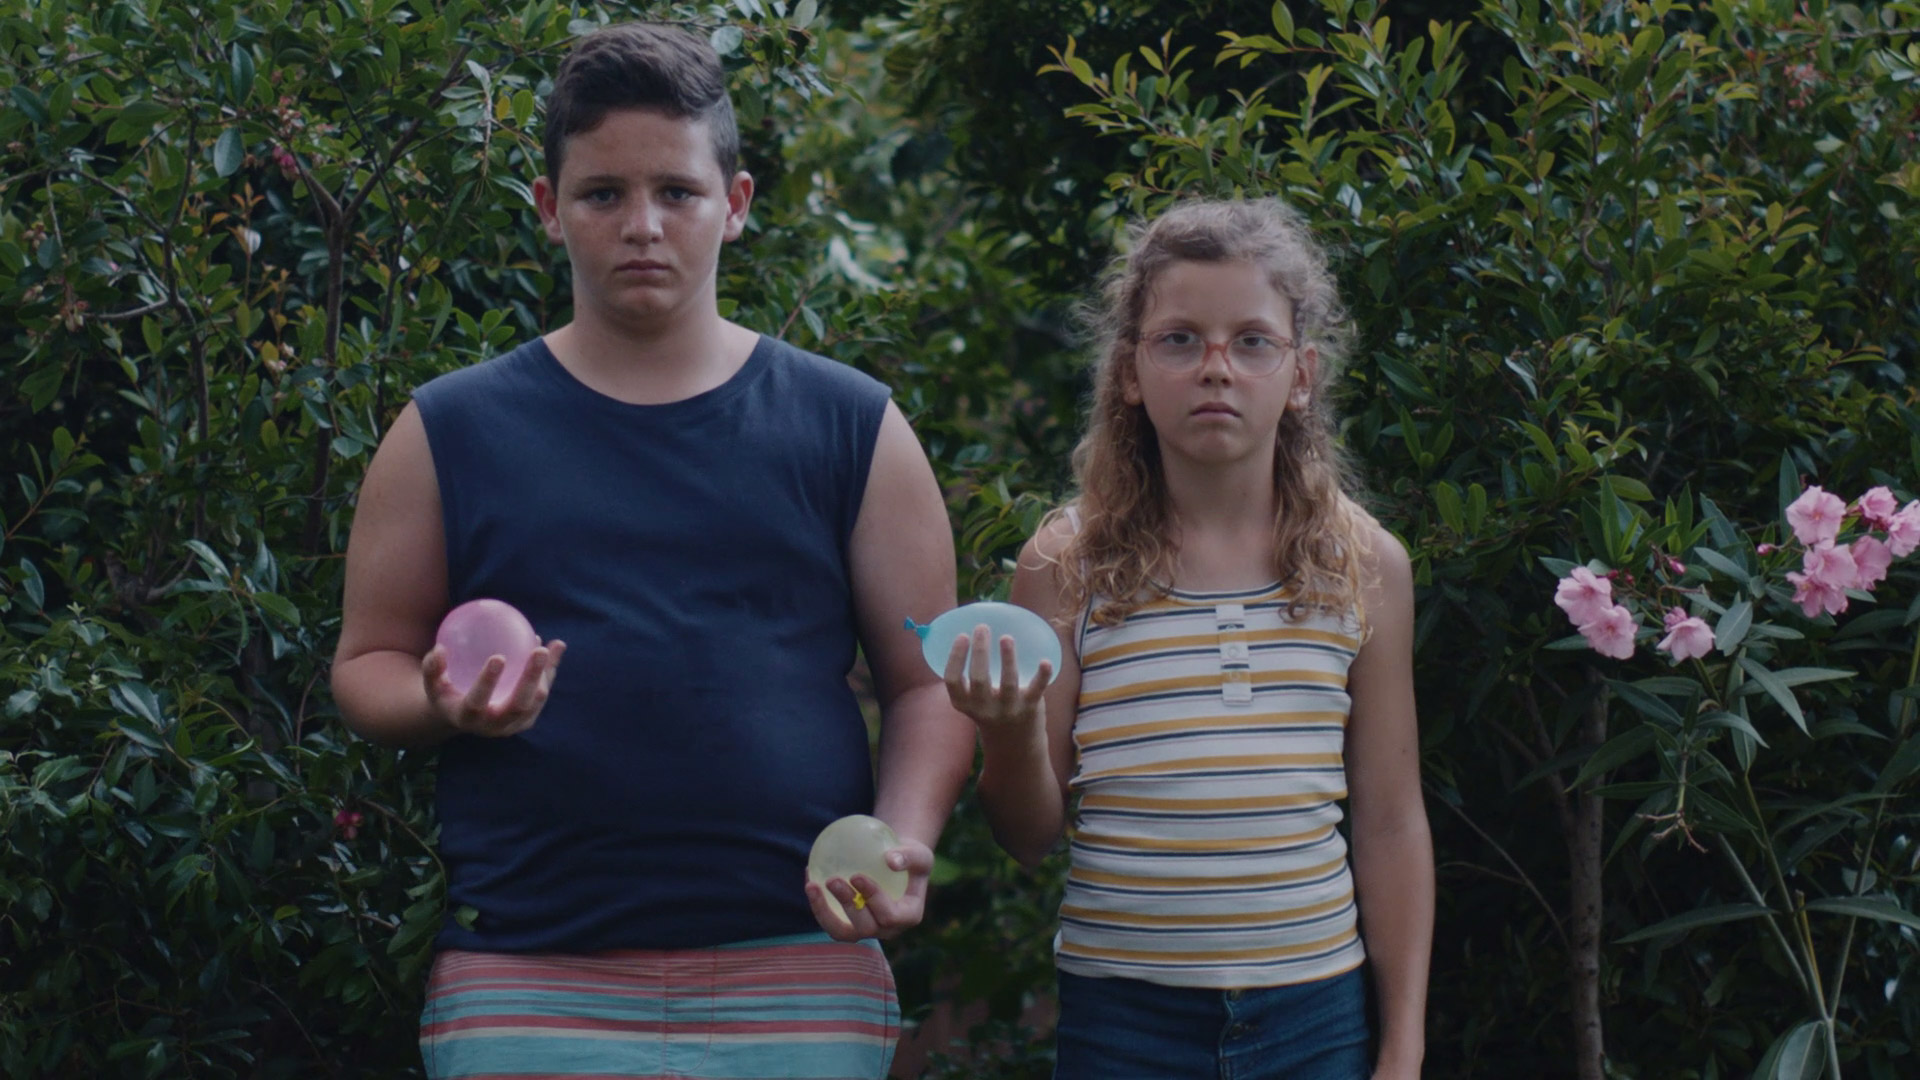 Young boy and girl holding water balloons in their hands